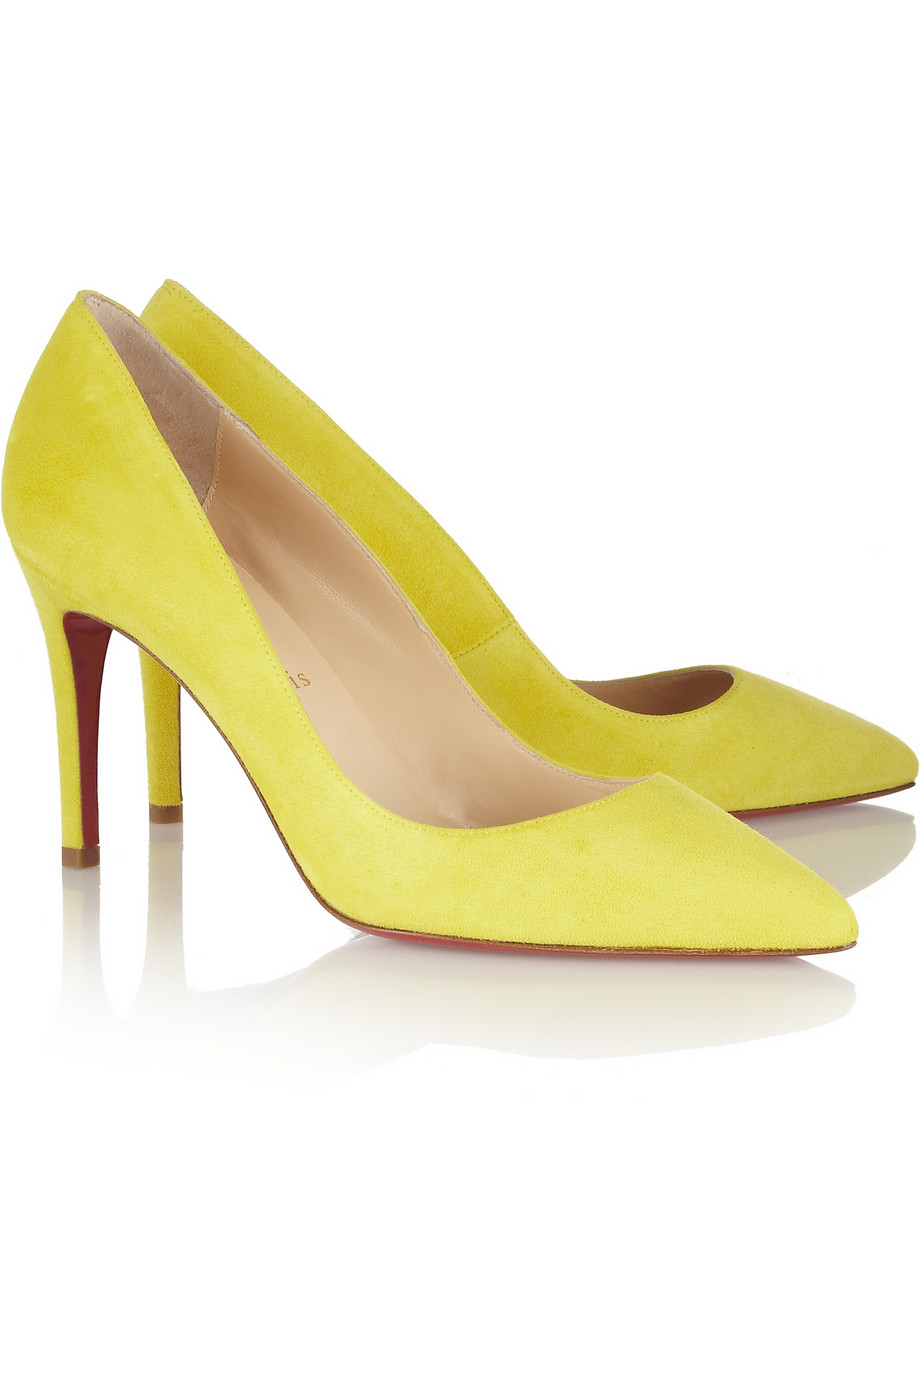 4f4542641ca6 Lyst - Christian Louboutin Pigalle 85 Suede Pumps in Yellow